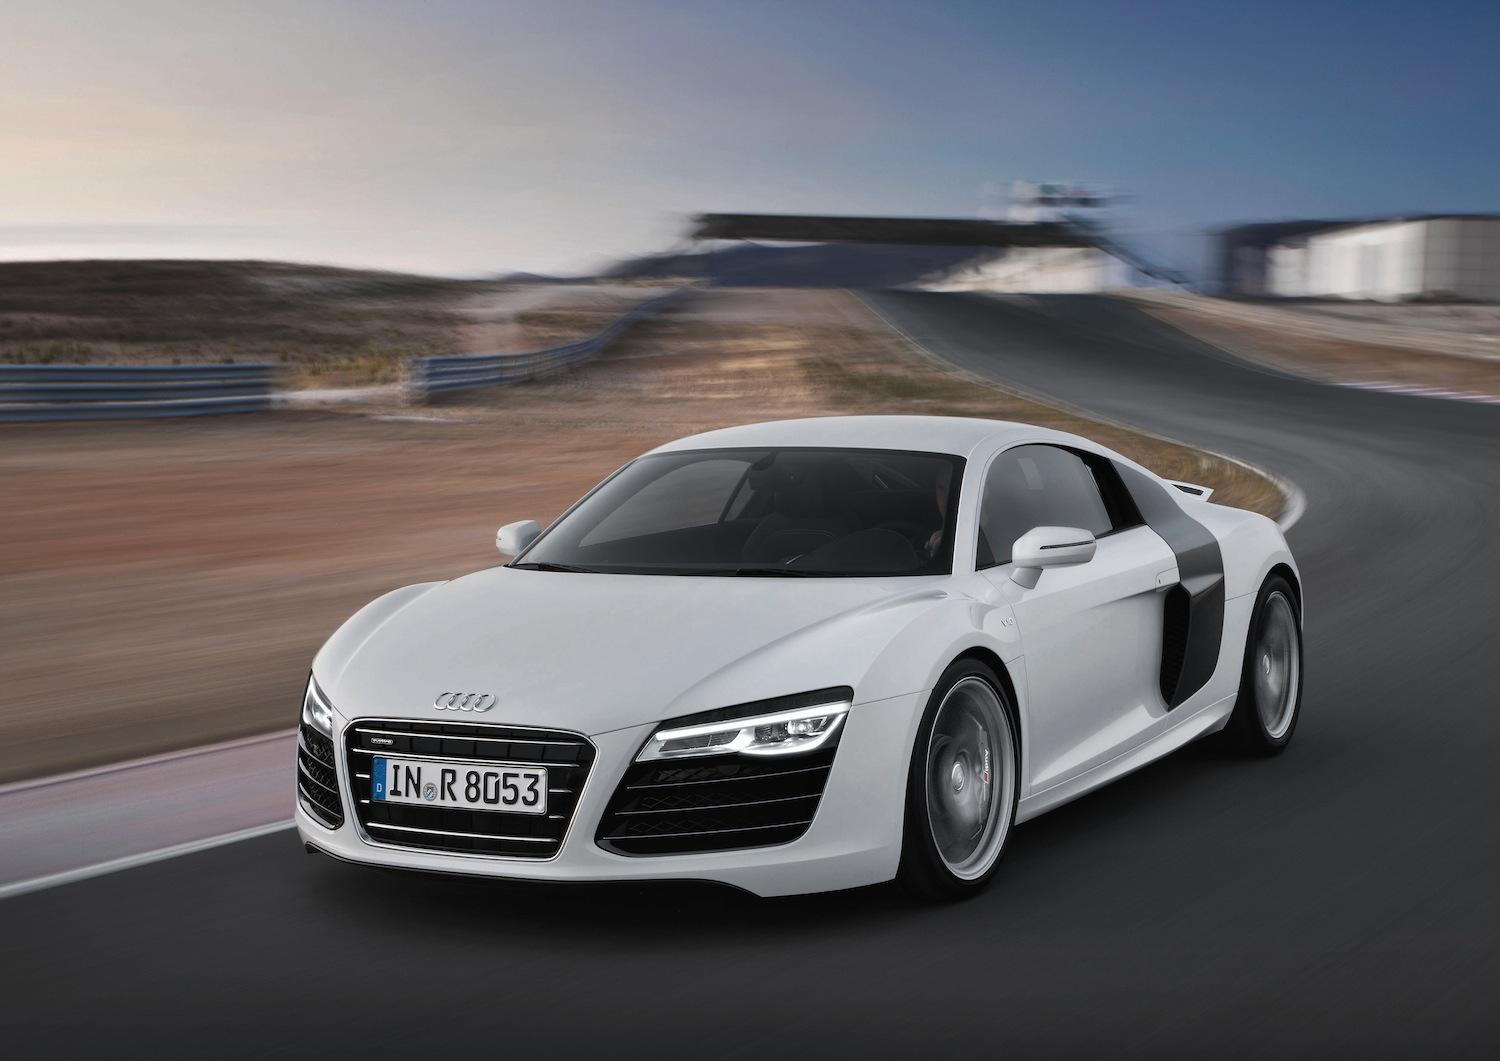 2016 Audi R8 Ulrich Hackenburg Hints At Smaller Engine